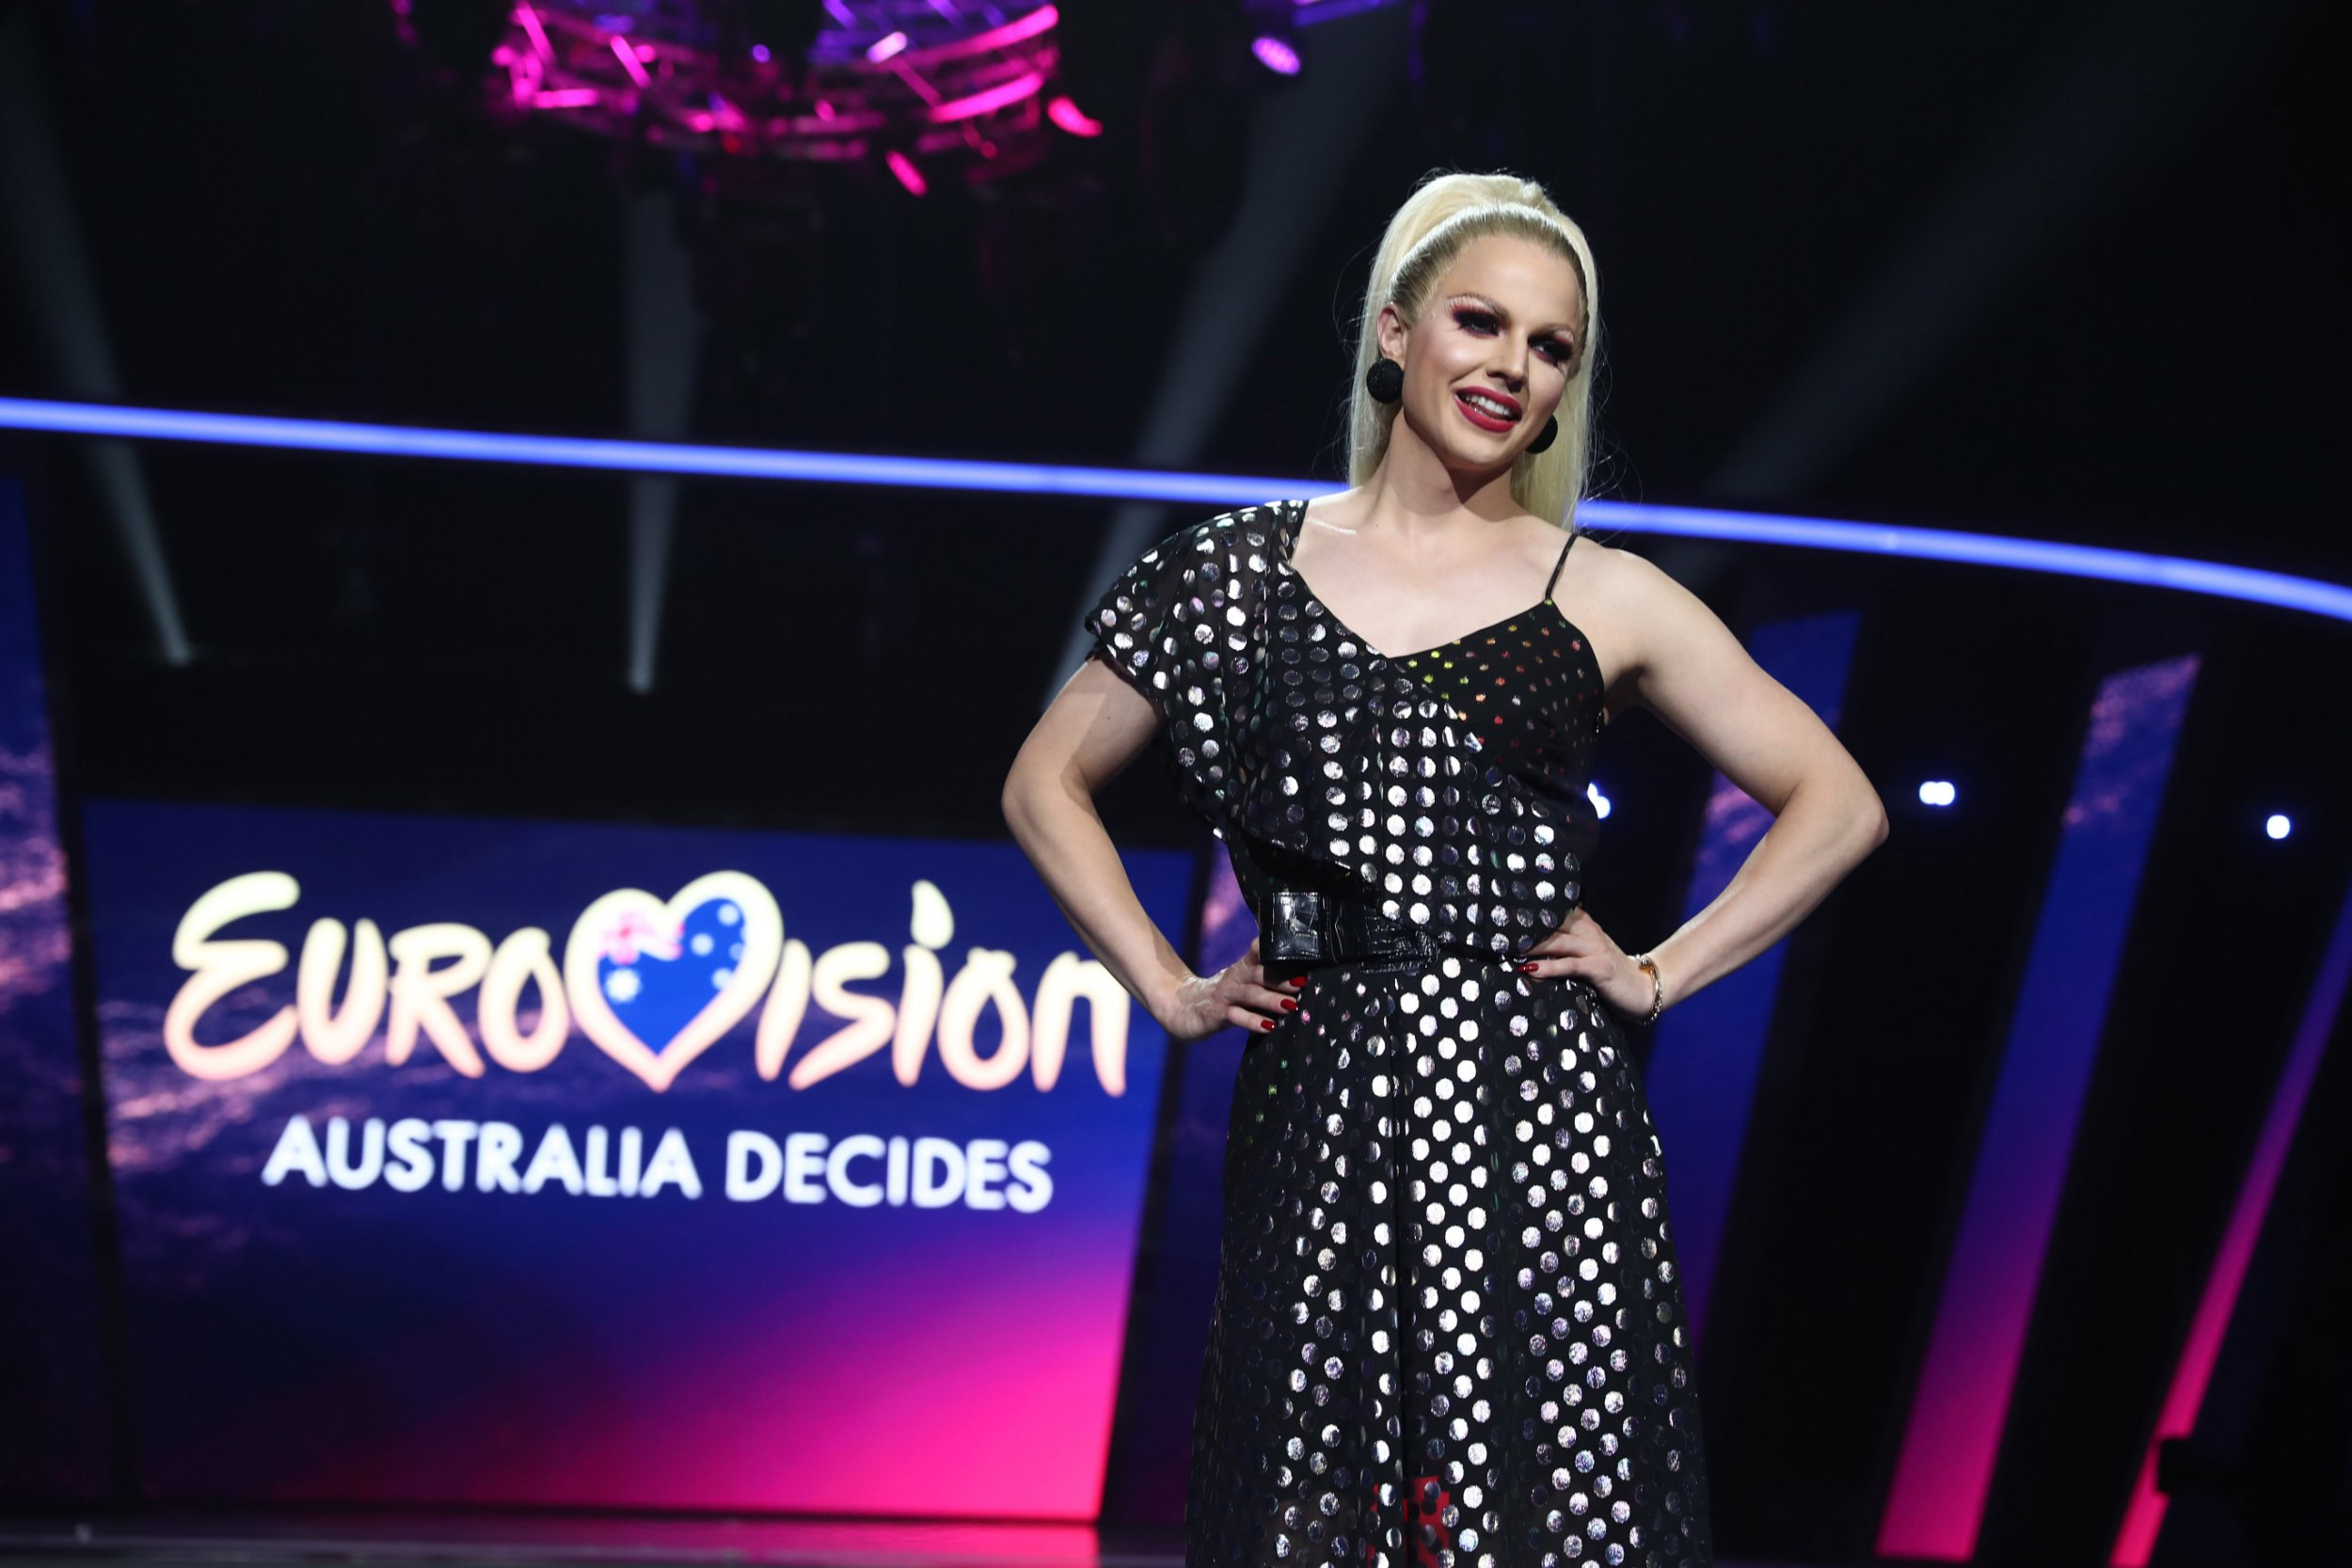 GOLD COAST, AUSTRALIA - FEBRUARY 08: Courtney Act poses during a media call for Eurovision - Australia Decides at Gold Coast Convention and Exhibition Centre on February 08, 2019 in Gold Coast, Australia. (Photo by Chris Hyde/Getty Images)